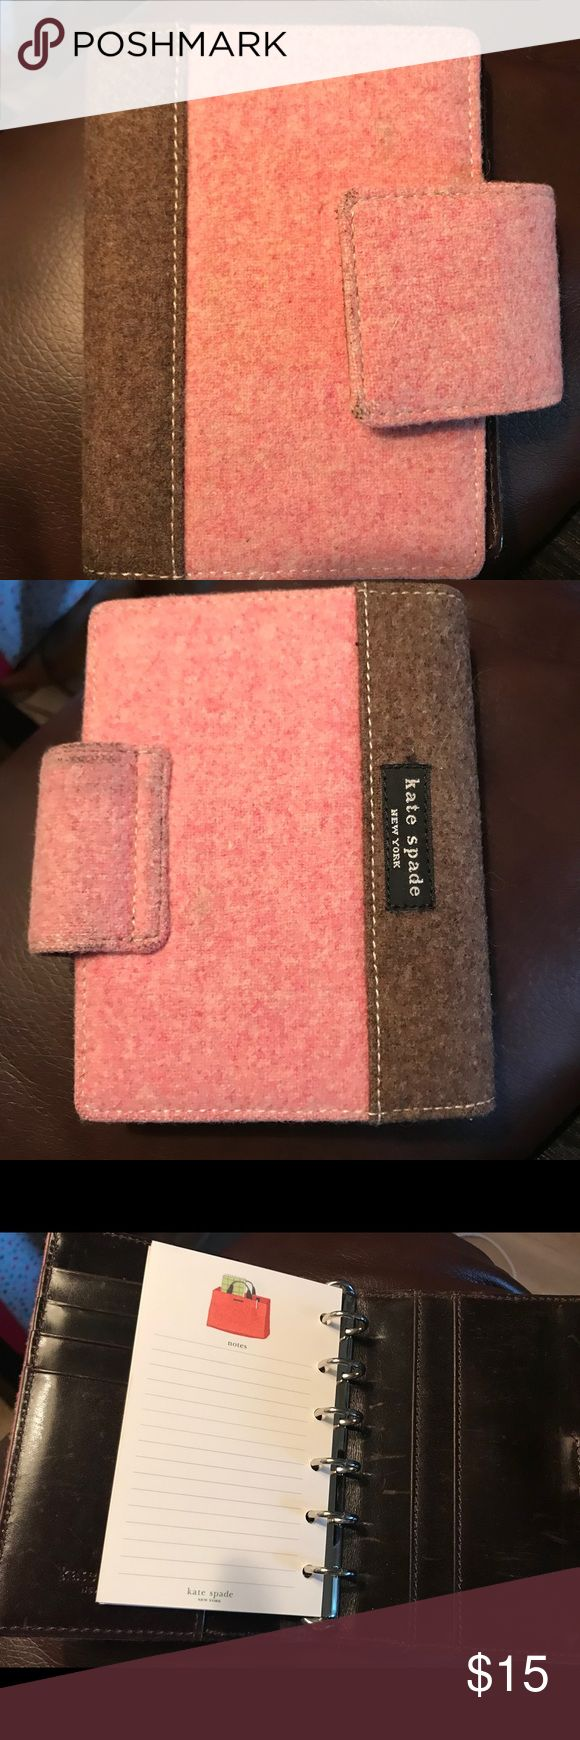 Kate spade planner-passport size. This is a repost. Adorable planner, a tad too small for me. Leather and wool is worn and scratched, but no tearing or rips. Great to throw in your purse. Price reflects condition. kate spade Other